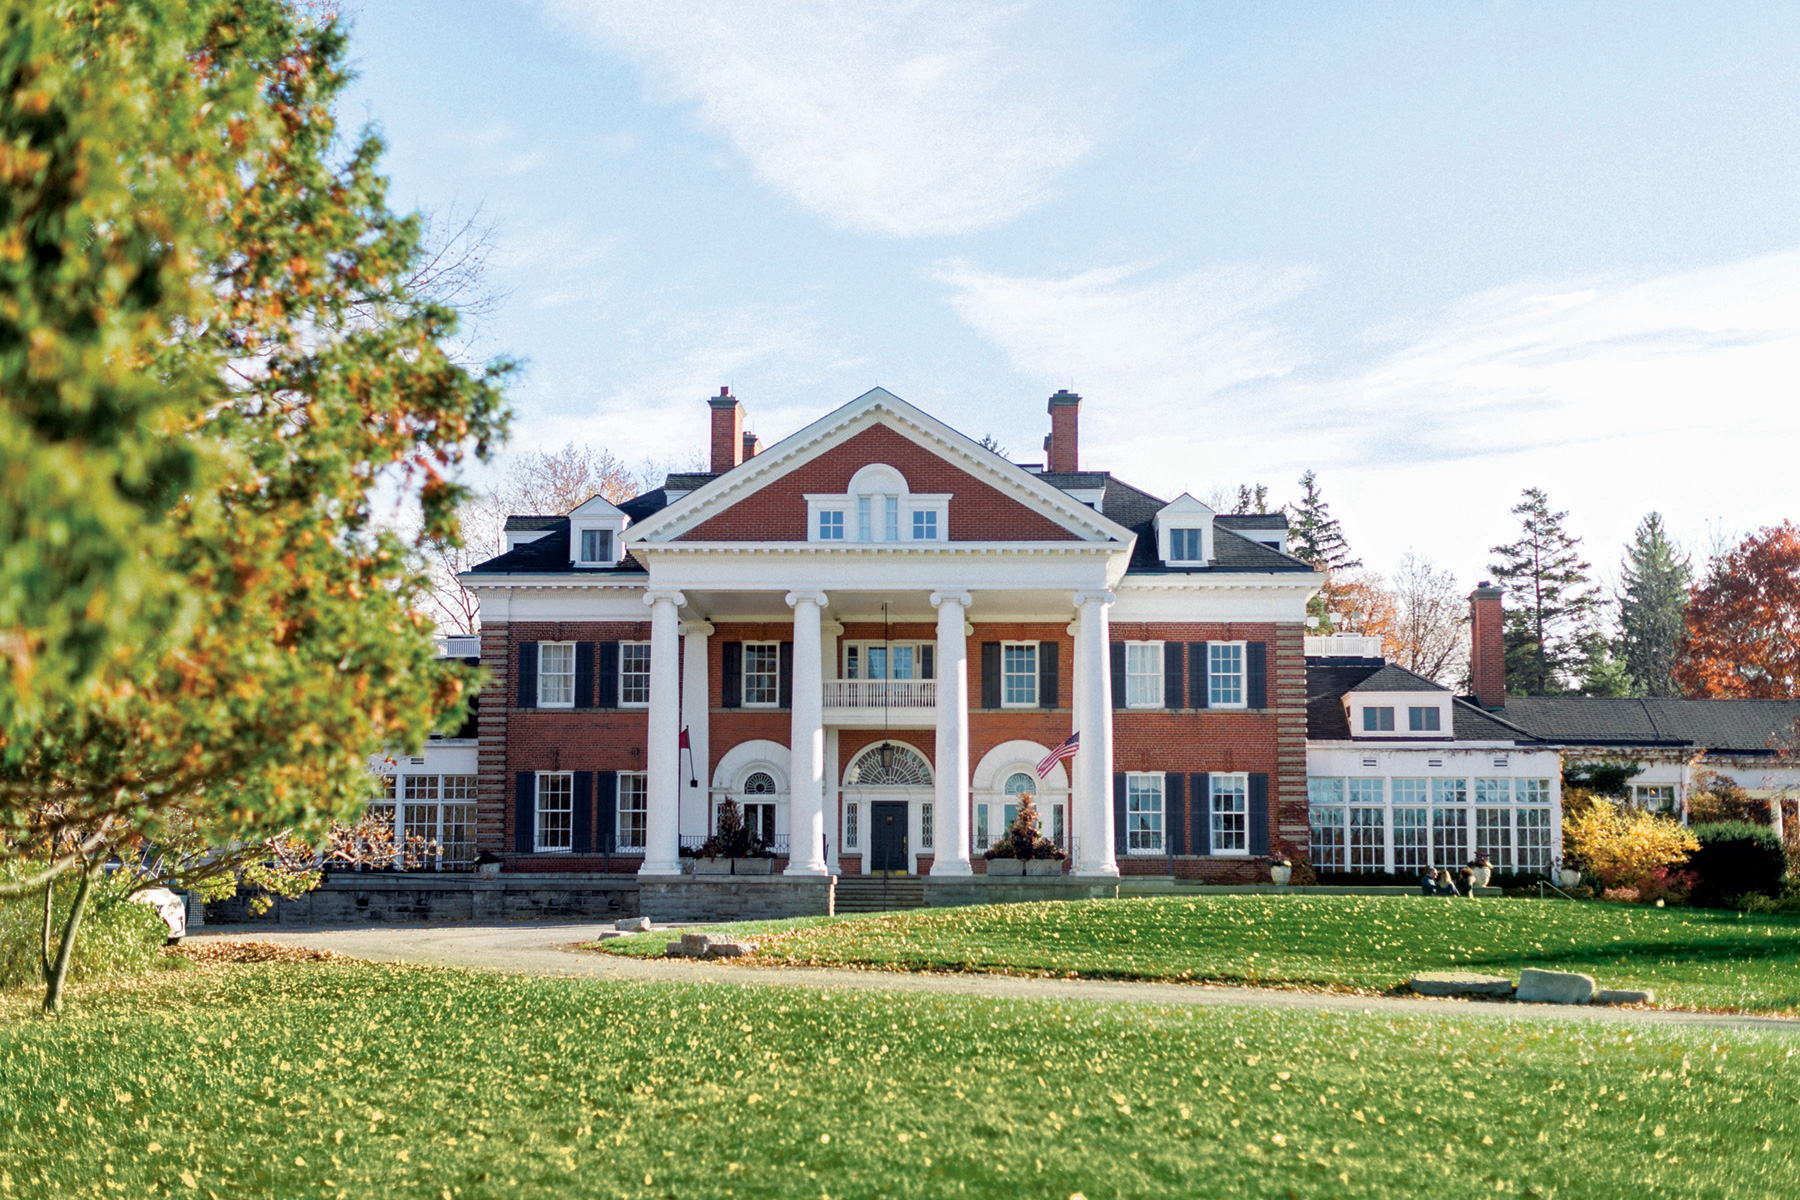 Grandeur at first sight is a prelude to Landon Hall's commitment to luxury